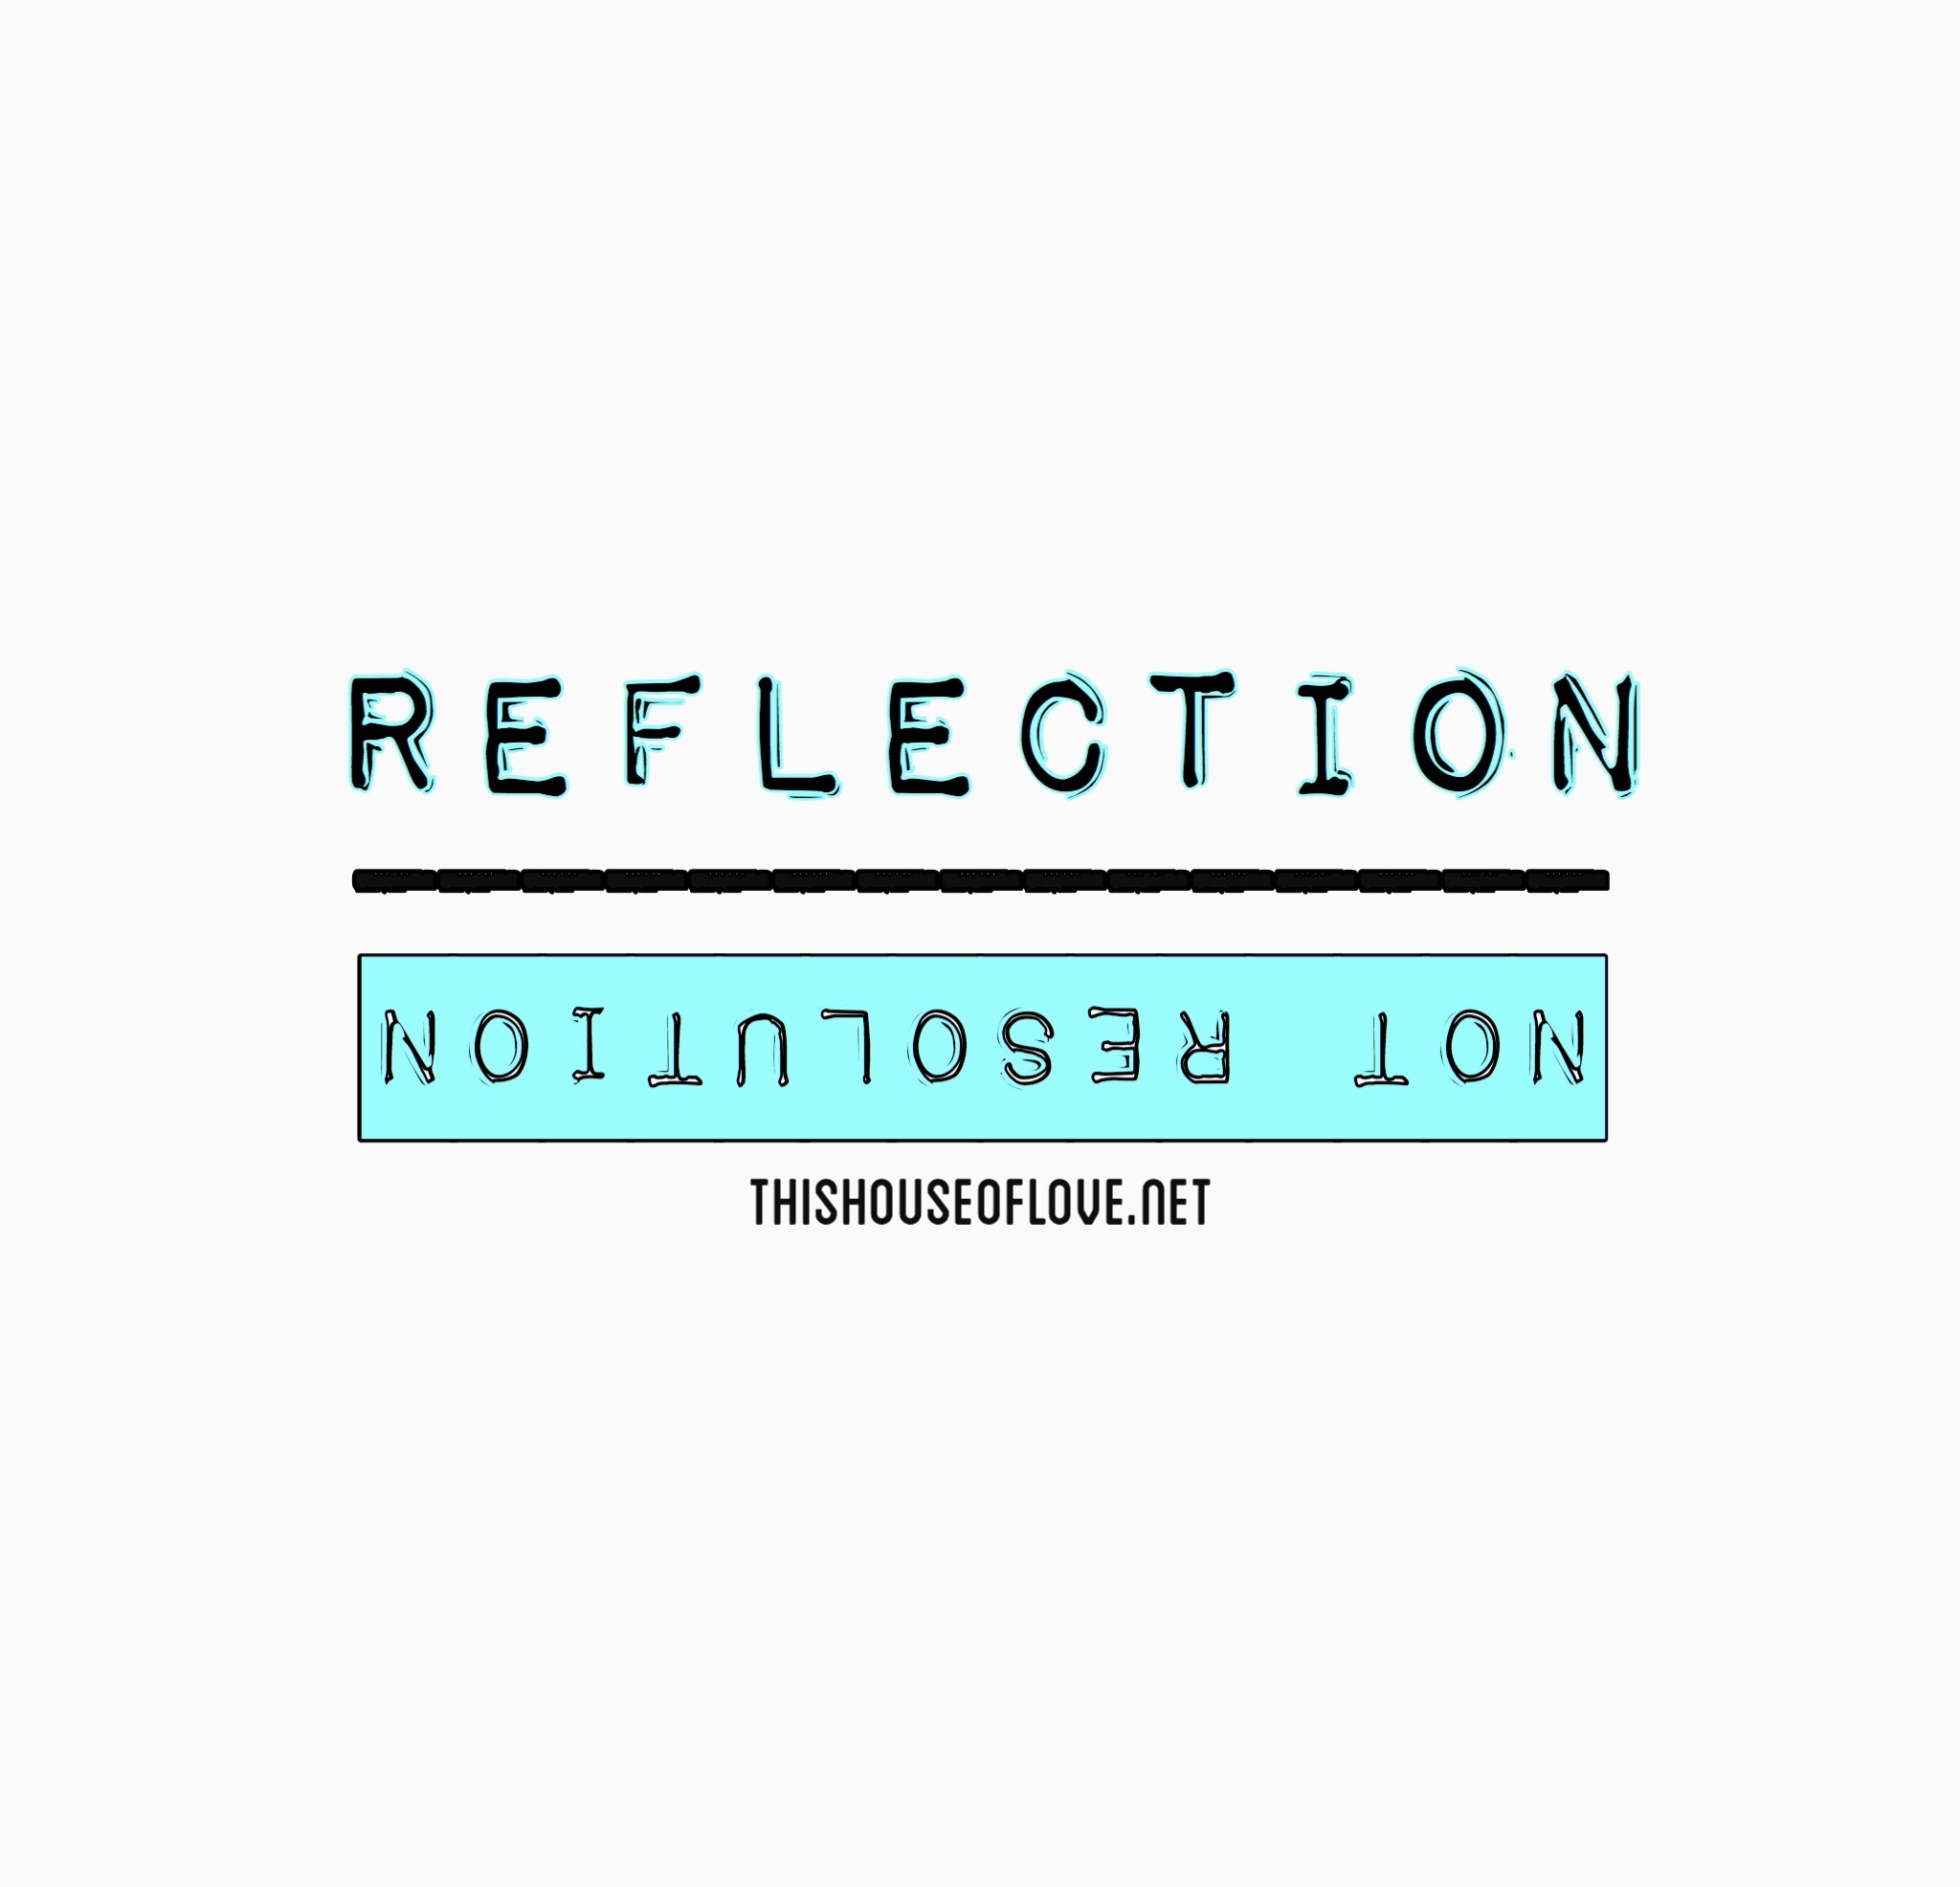 Reflection, not Resolution